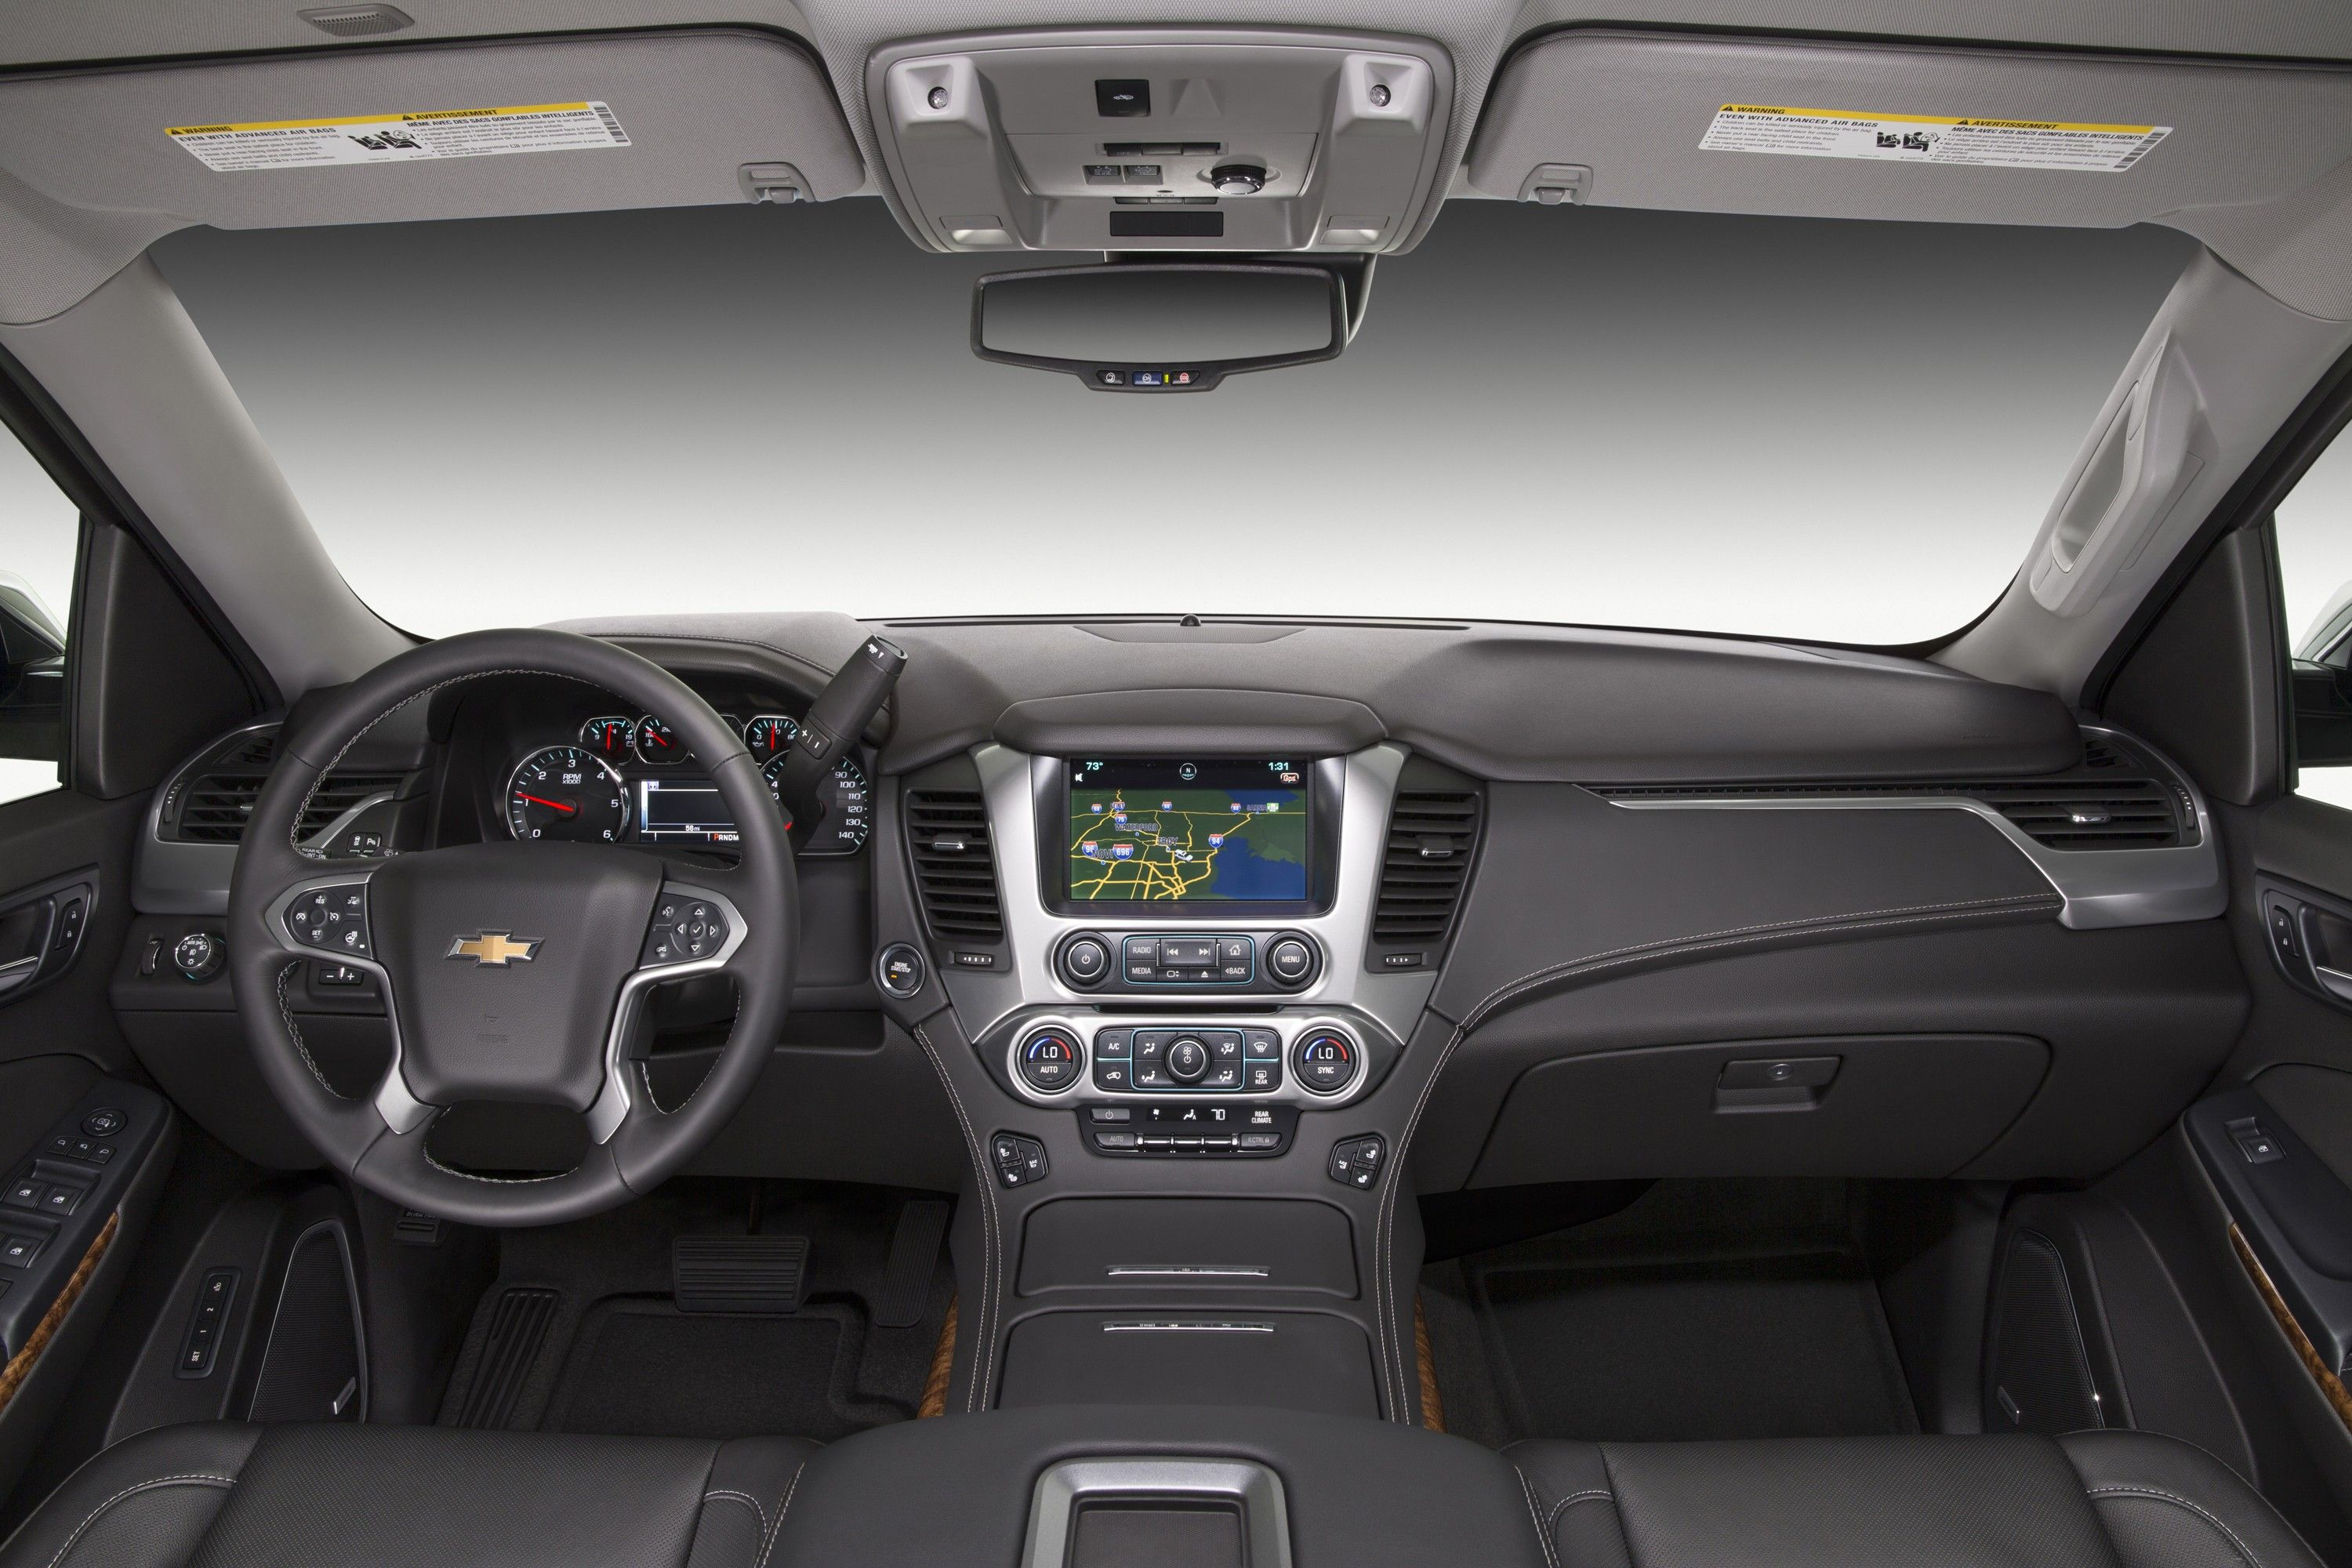 2016 Chevrolet Tahoe Updates Detailed Hud And Intellibeam